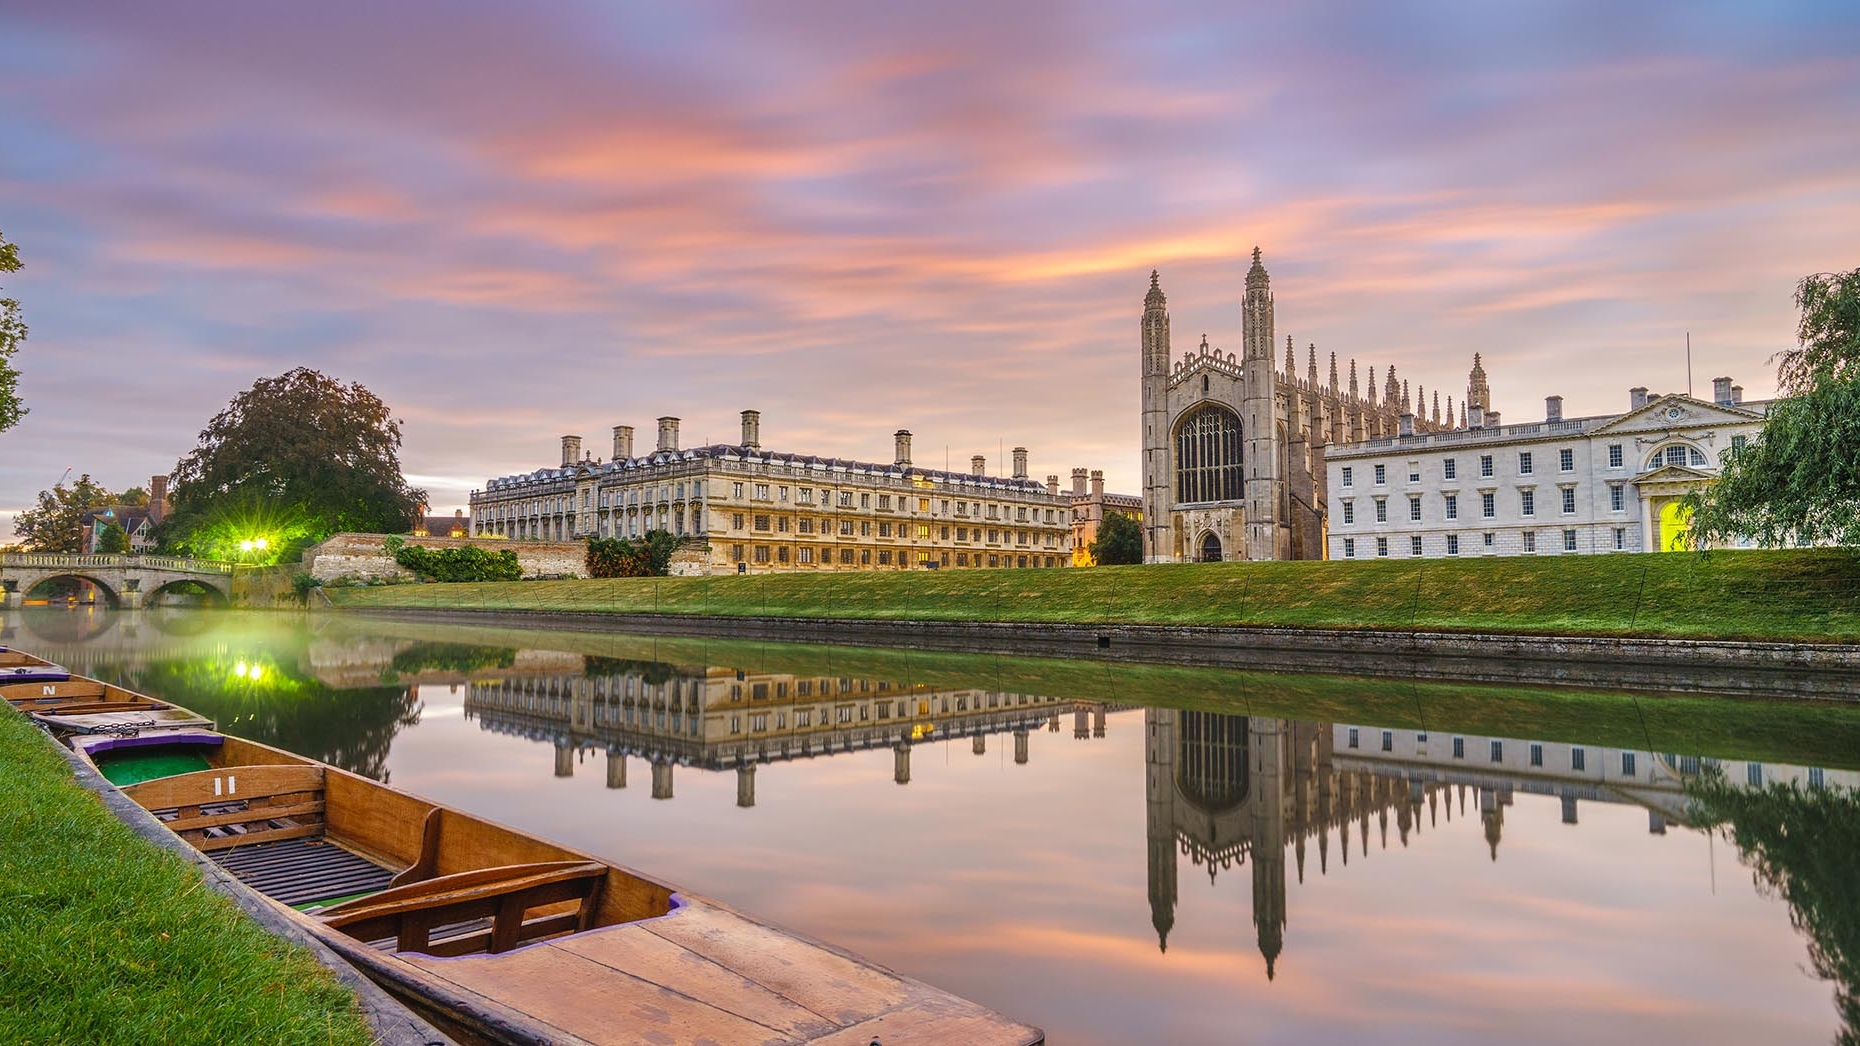 the Royal hotel cambridge - 30th December 2019 3nts NEW YEAR BRIDGE HOLIDAY